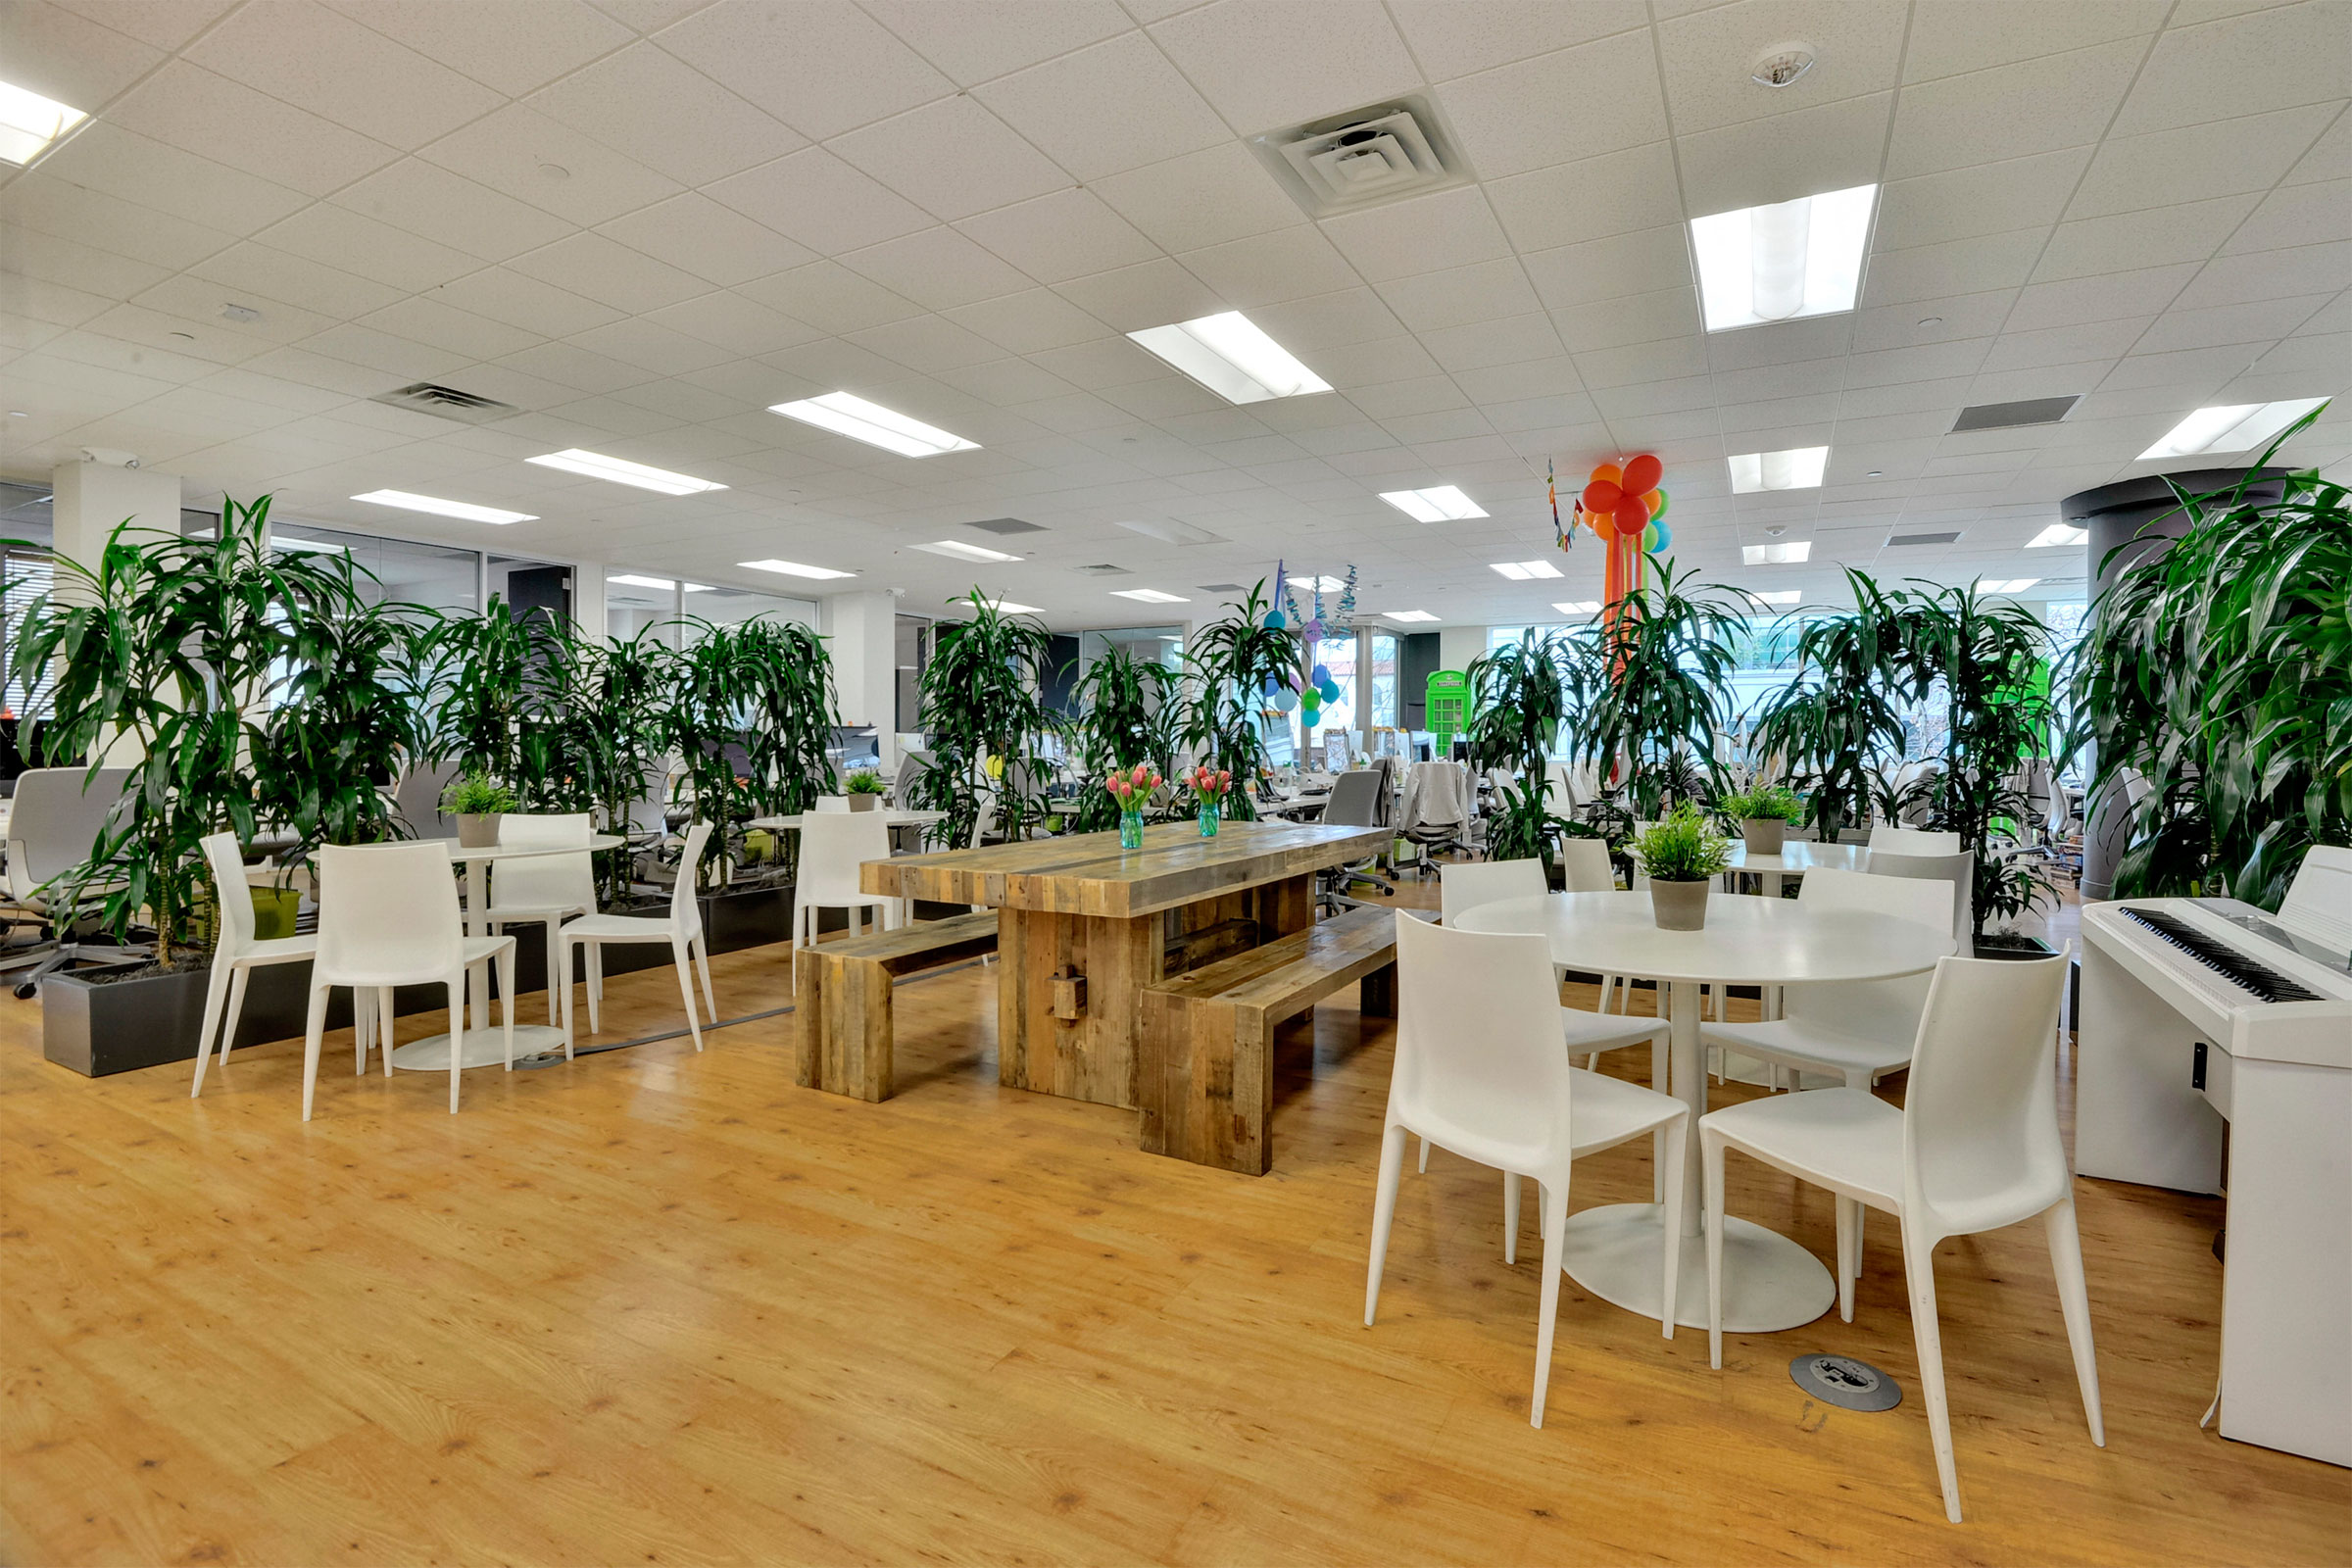 Houzz Headquarters And Offices, Palo Alto